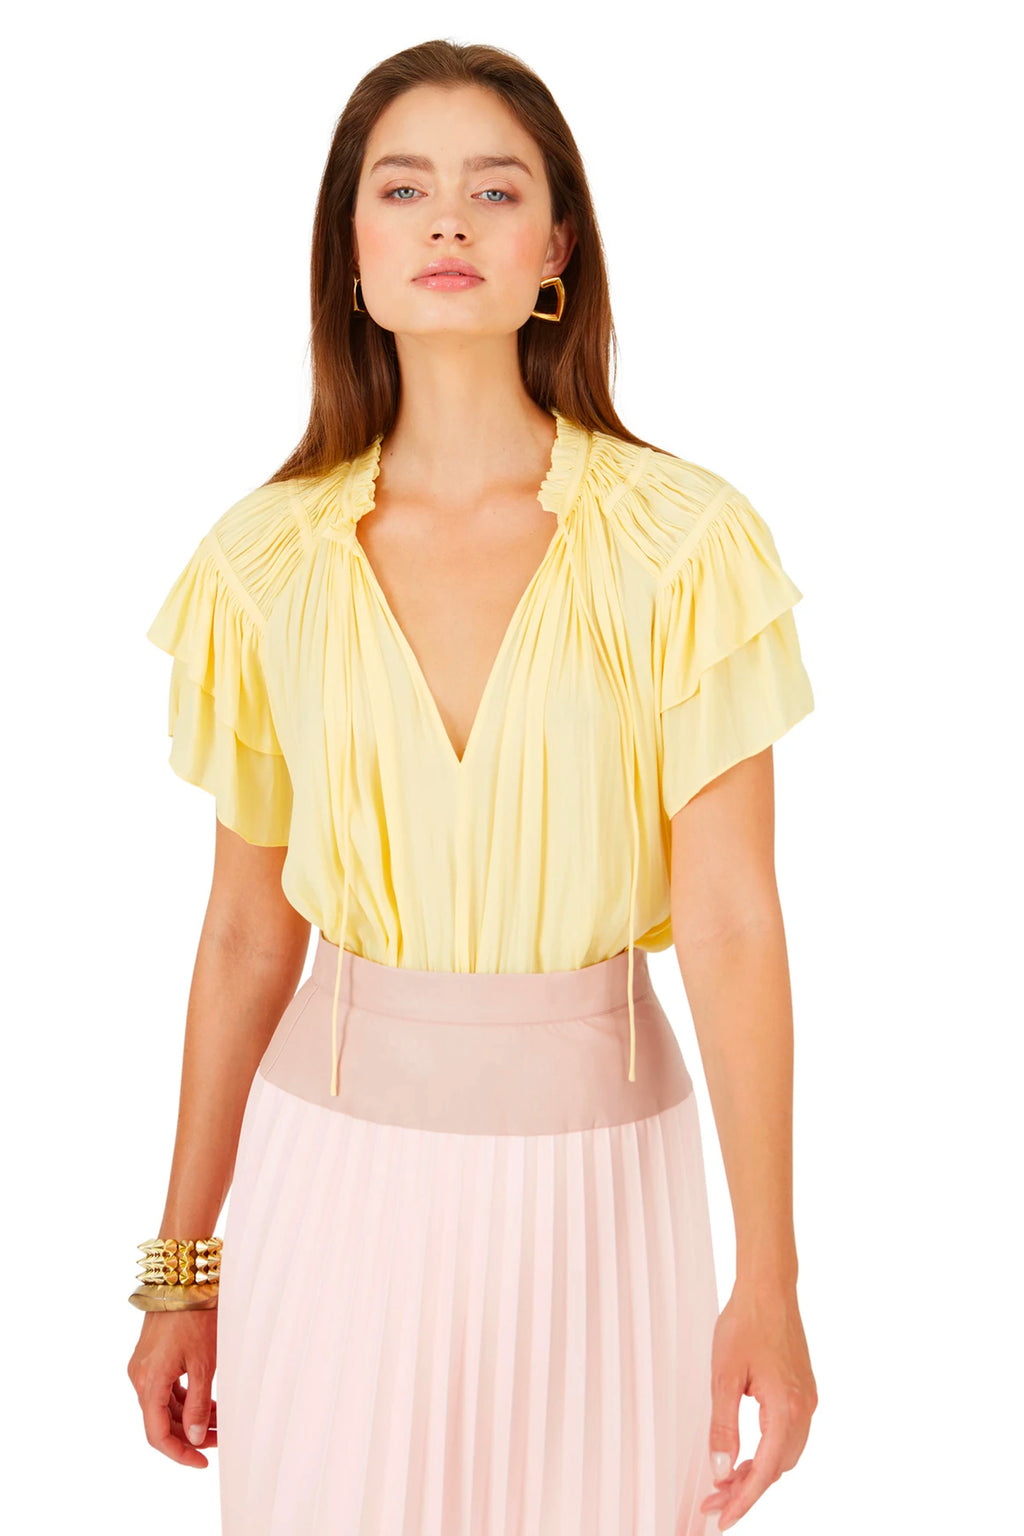 Caballero Kelsie Top in Yellow Jacquard Dot